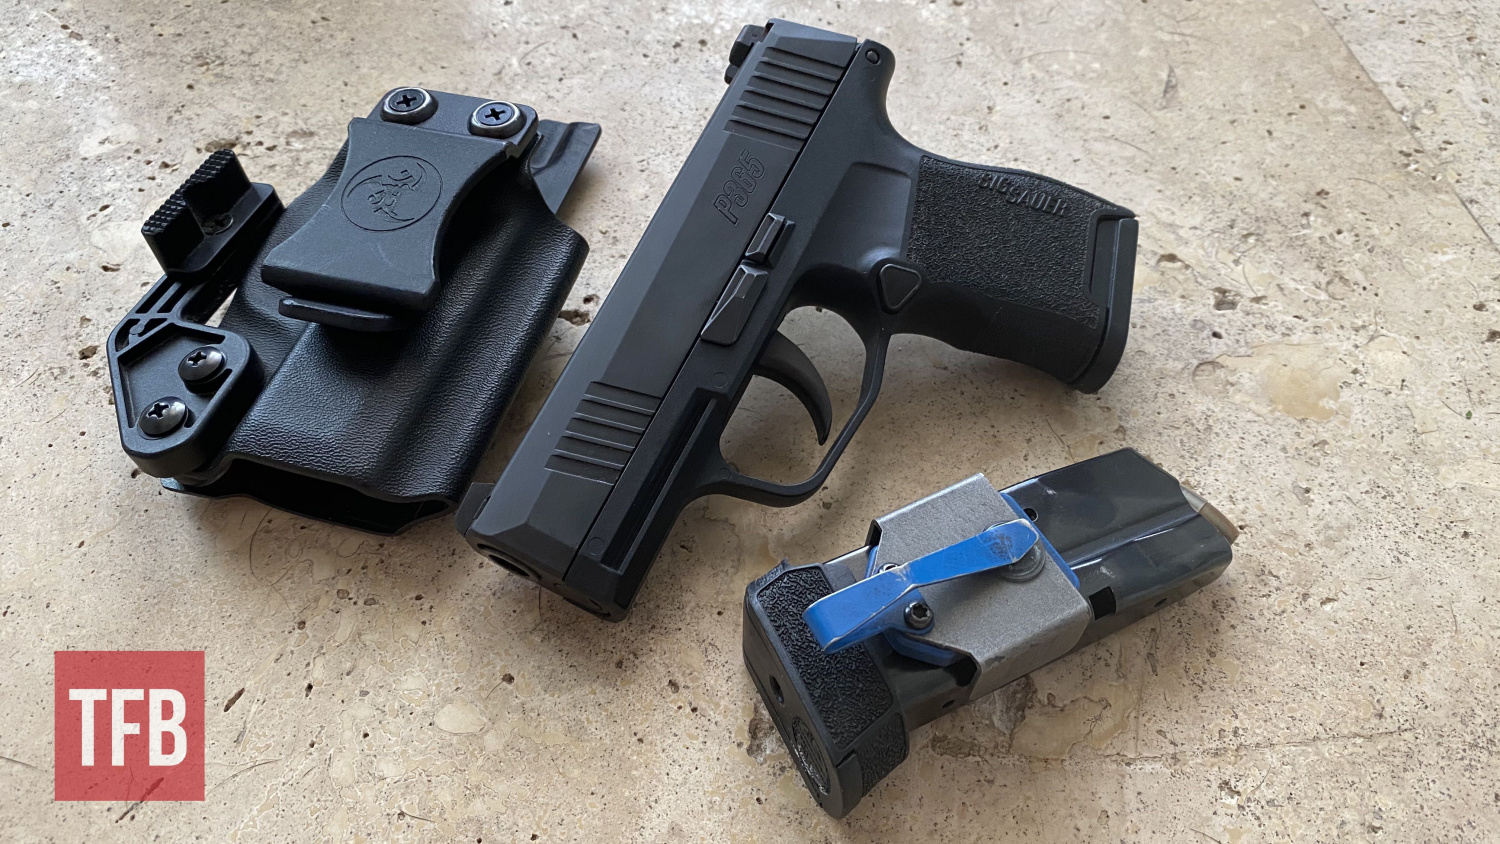 Concealed Carry Corner: Carry Positions Ranked Best To Worst